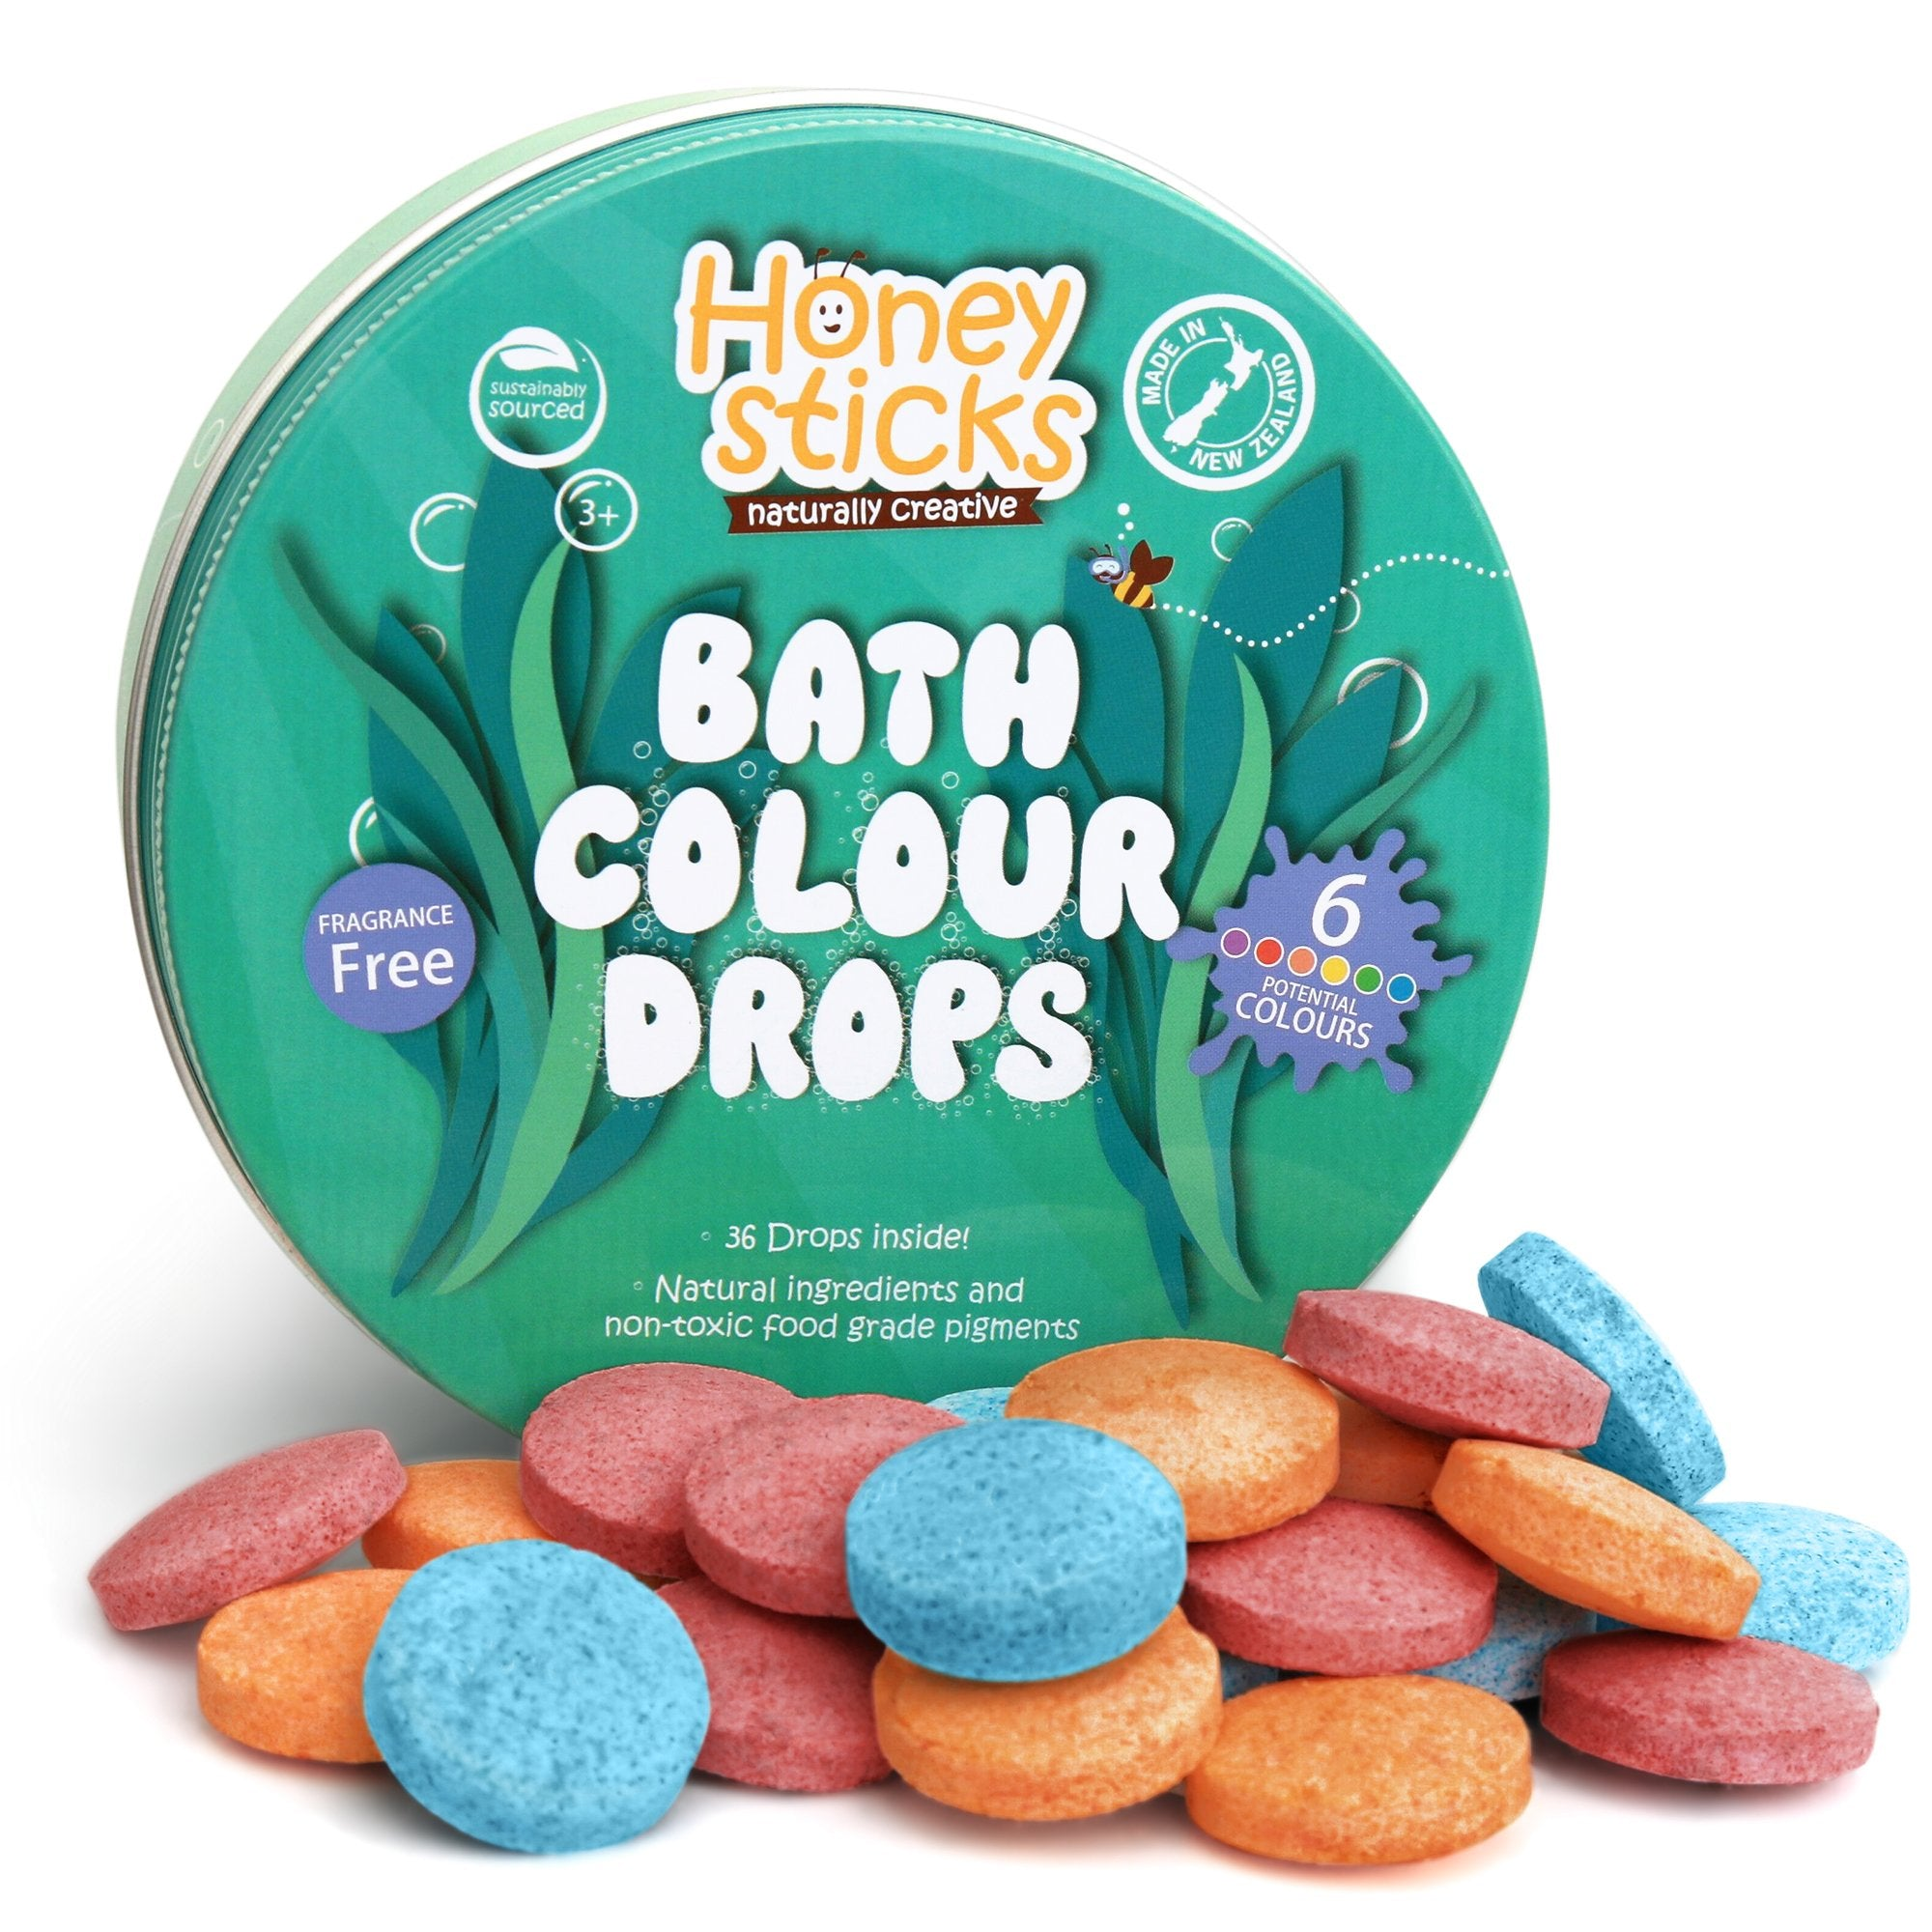 Honeysticks Bath Drops